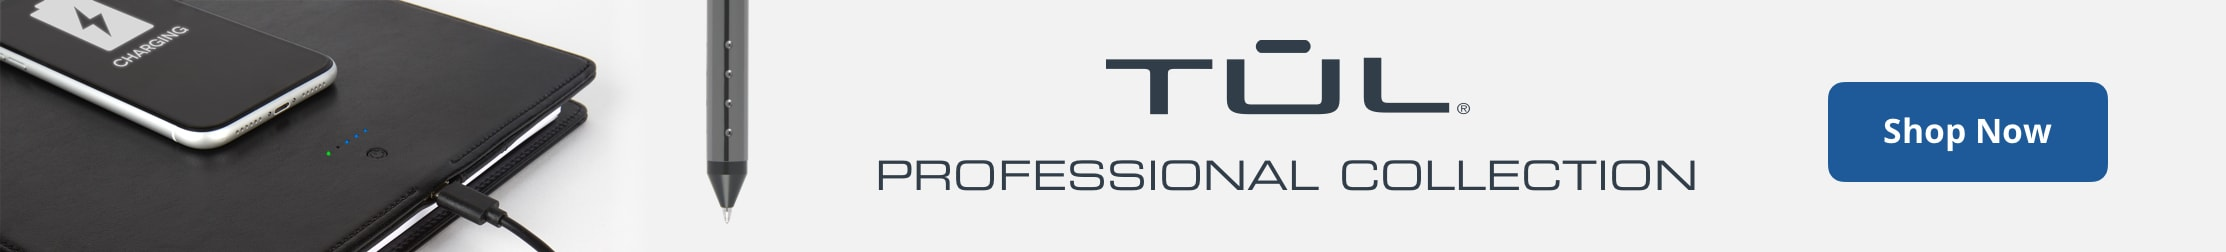 Introducing TUL RO Bringing next-level innovation and sophistication to your workday.